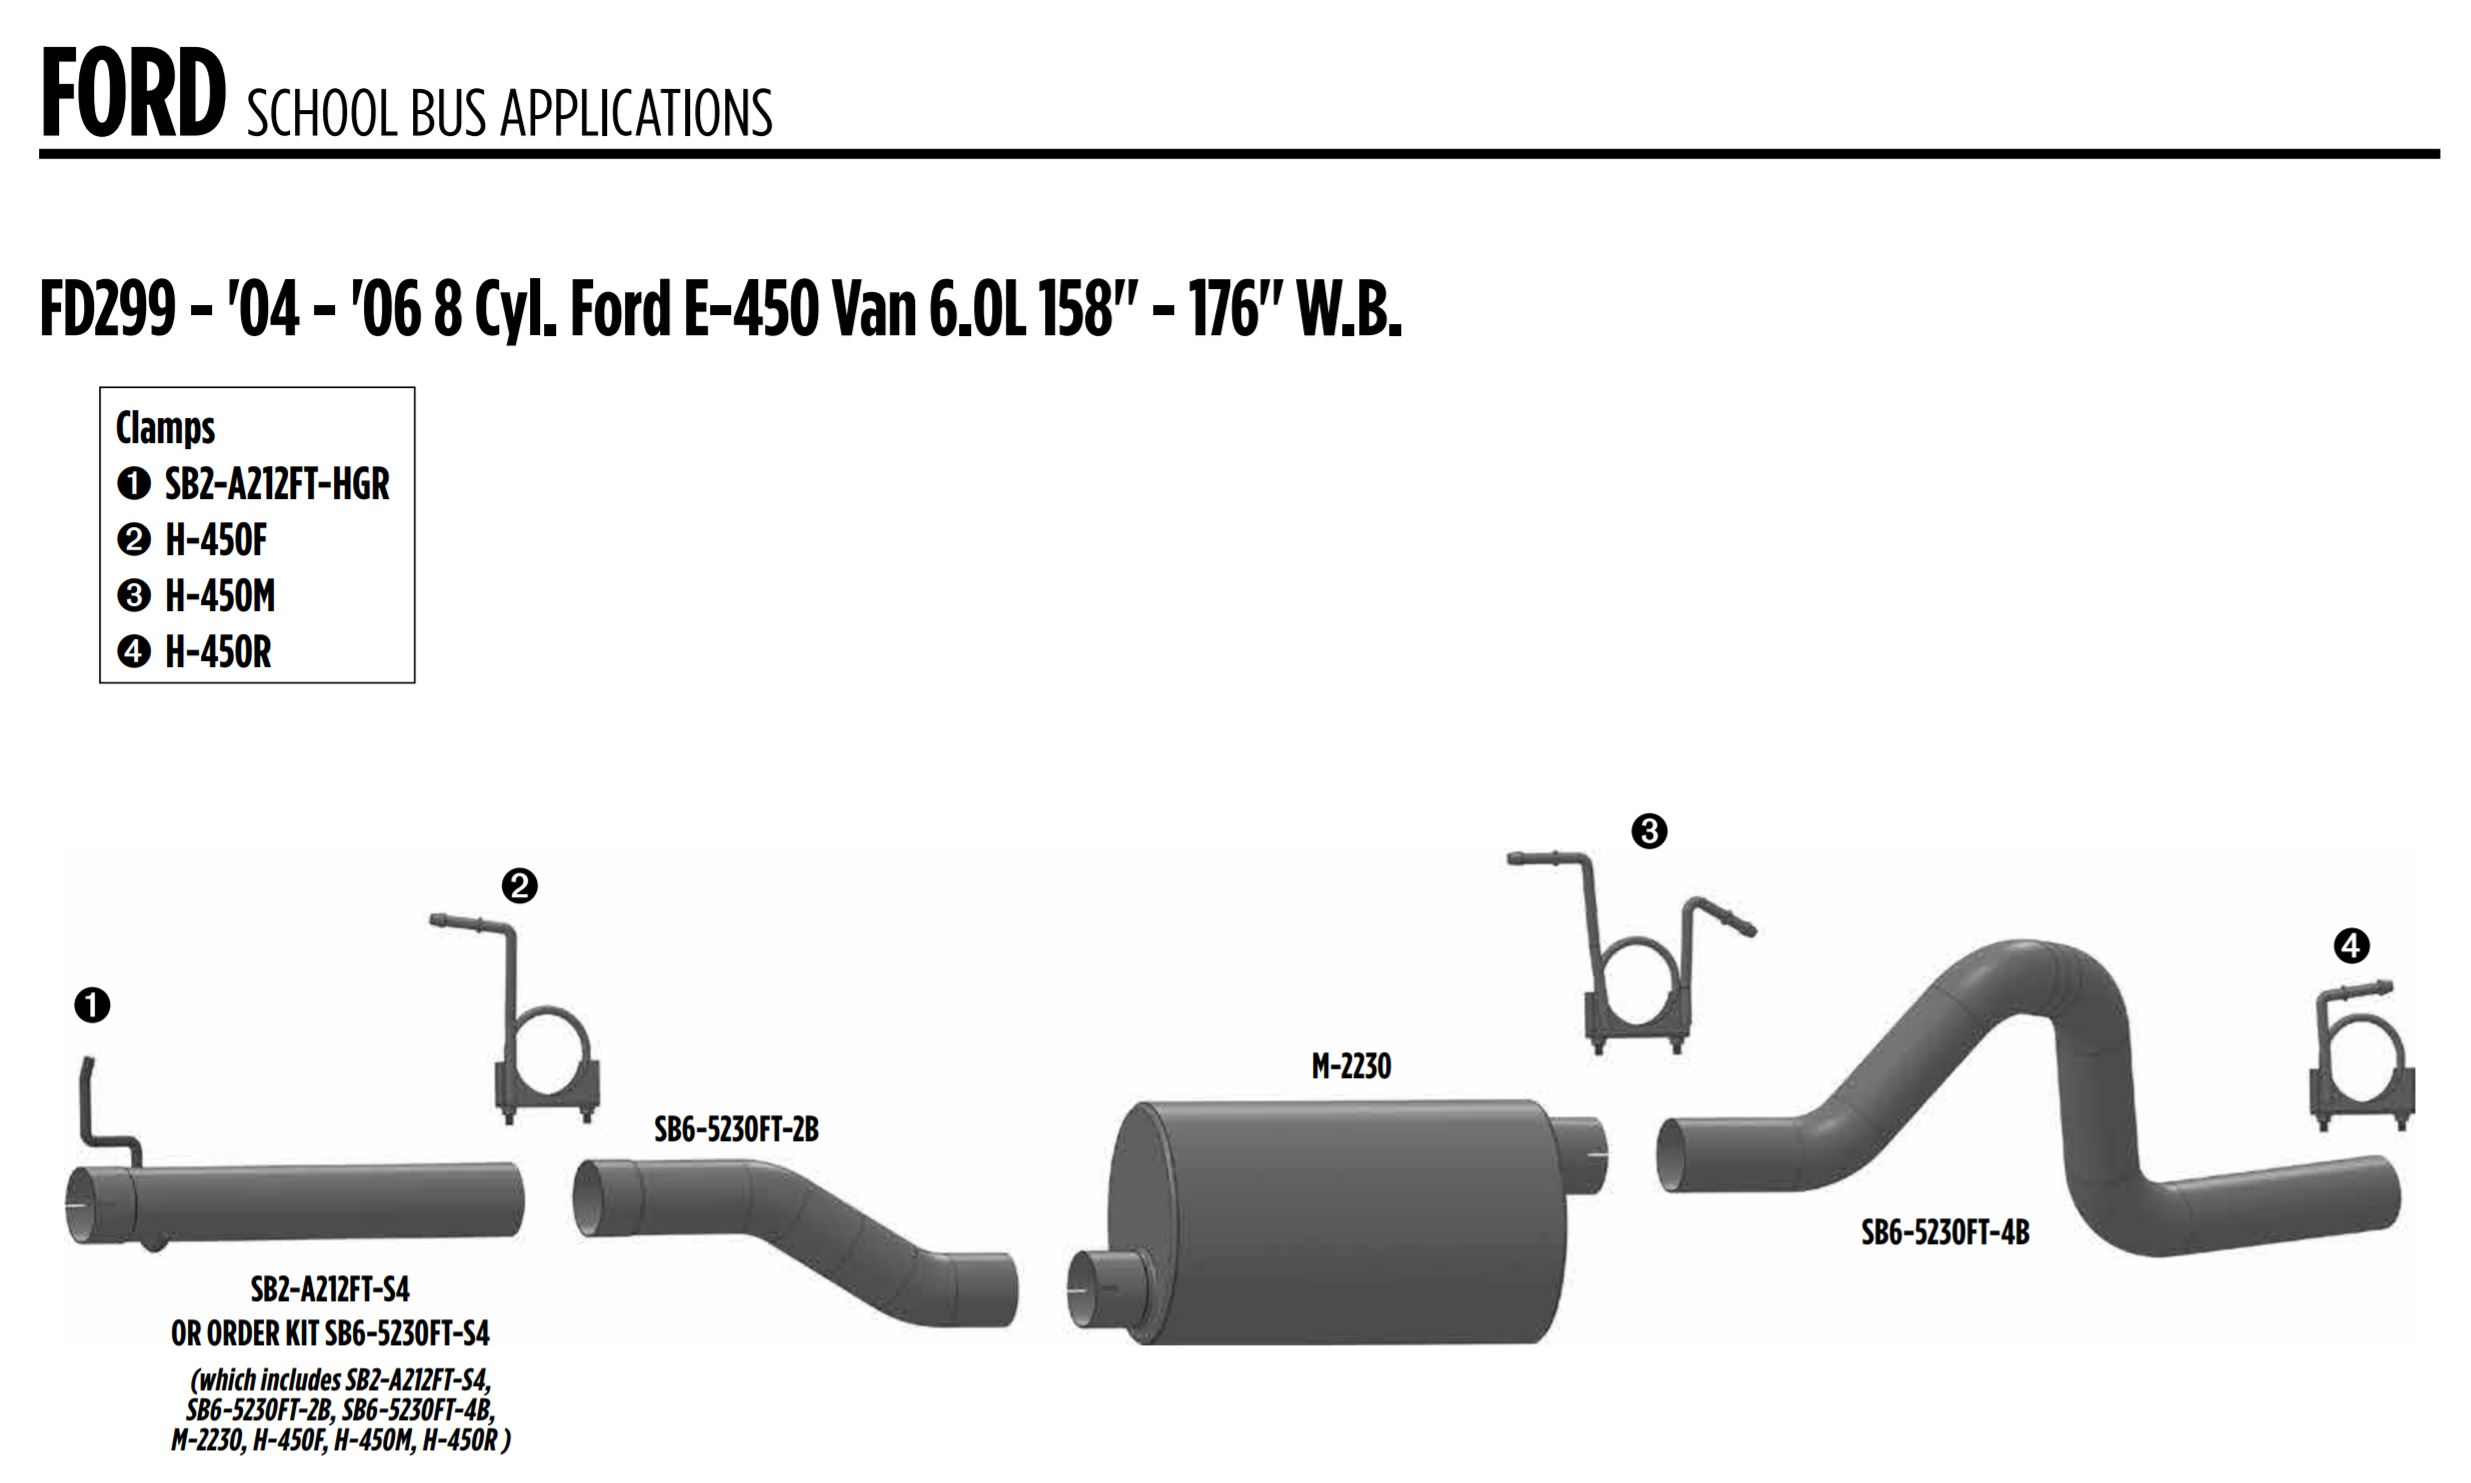 school-bus-ford-e450-exhaust.jpg